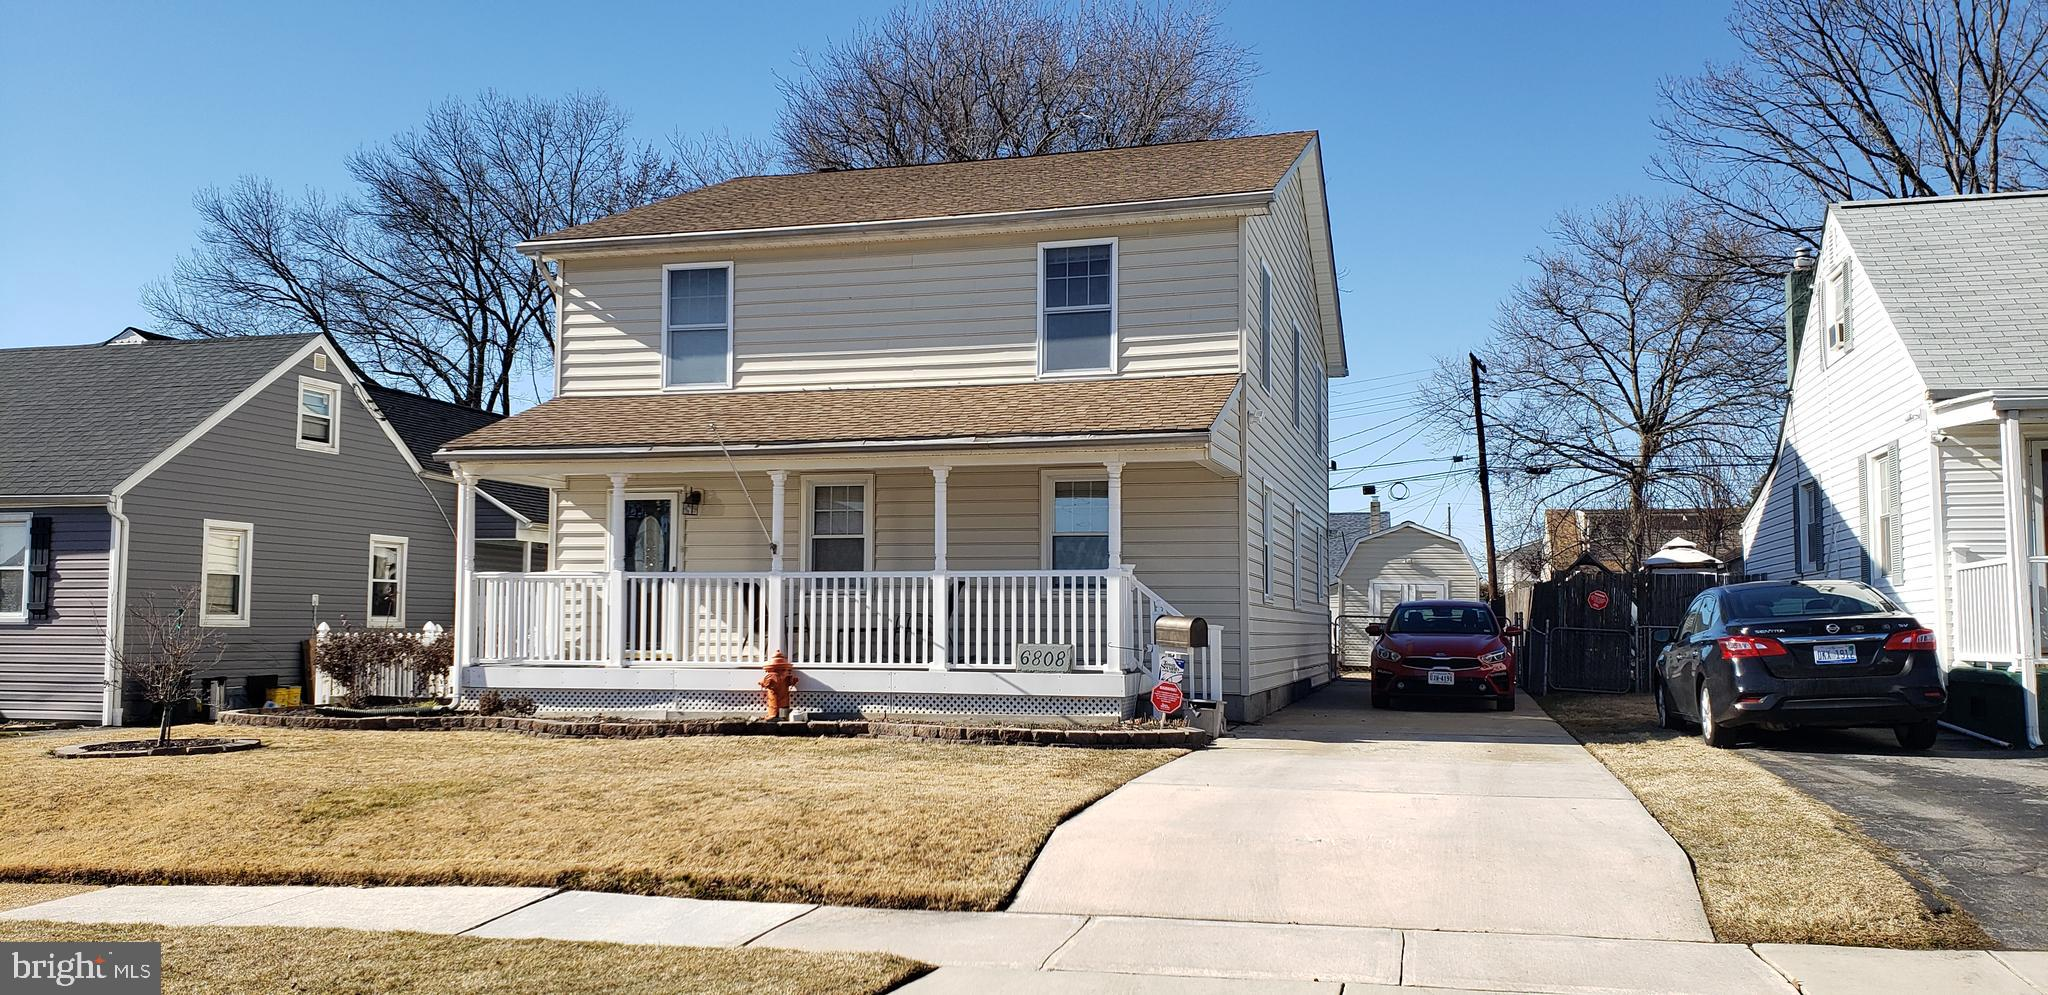 WELCOME HOME, THIS 5 BED, POSSIBLY 6, 3 FULL BATH HOME IS WAITING FOR YOU.  ALL THE EXTRAS ARE HERE,